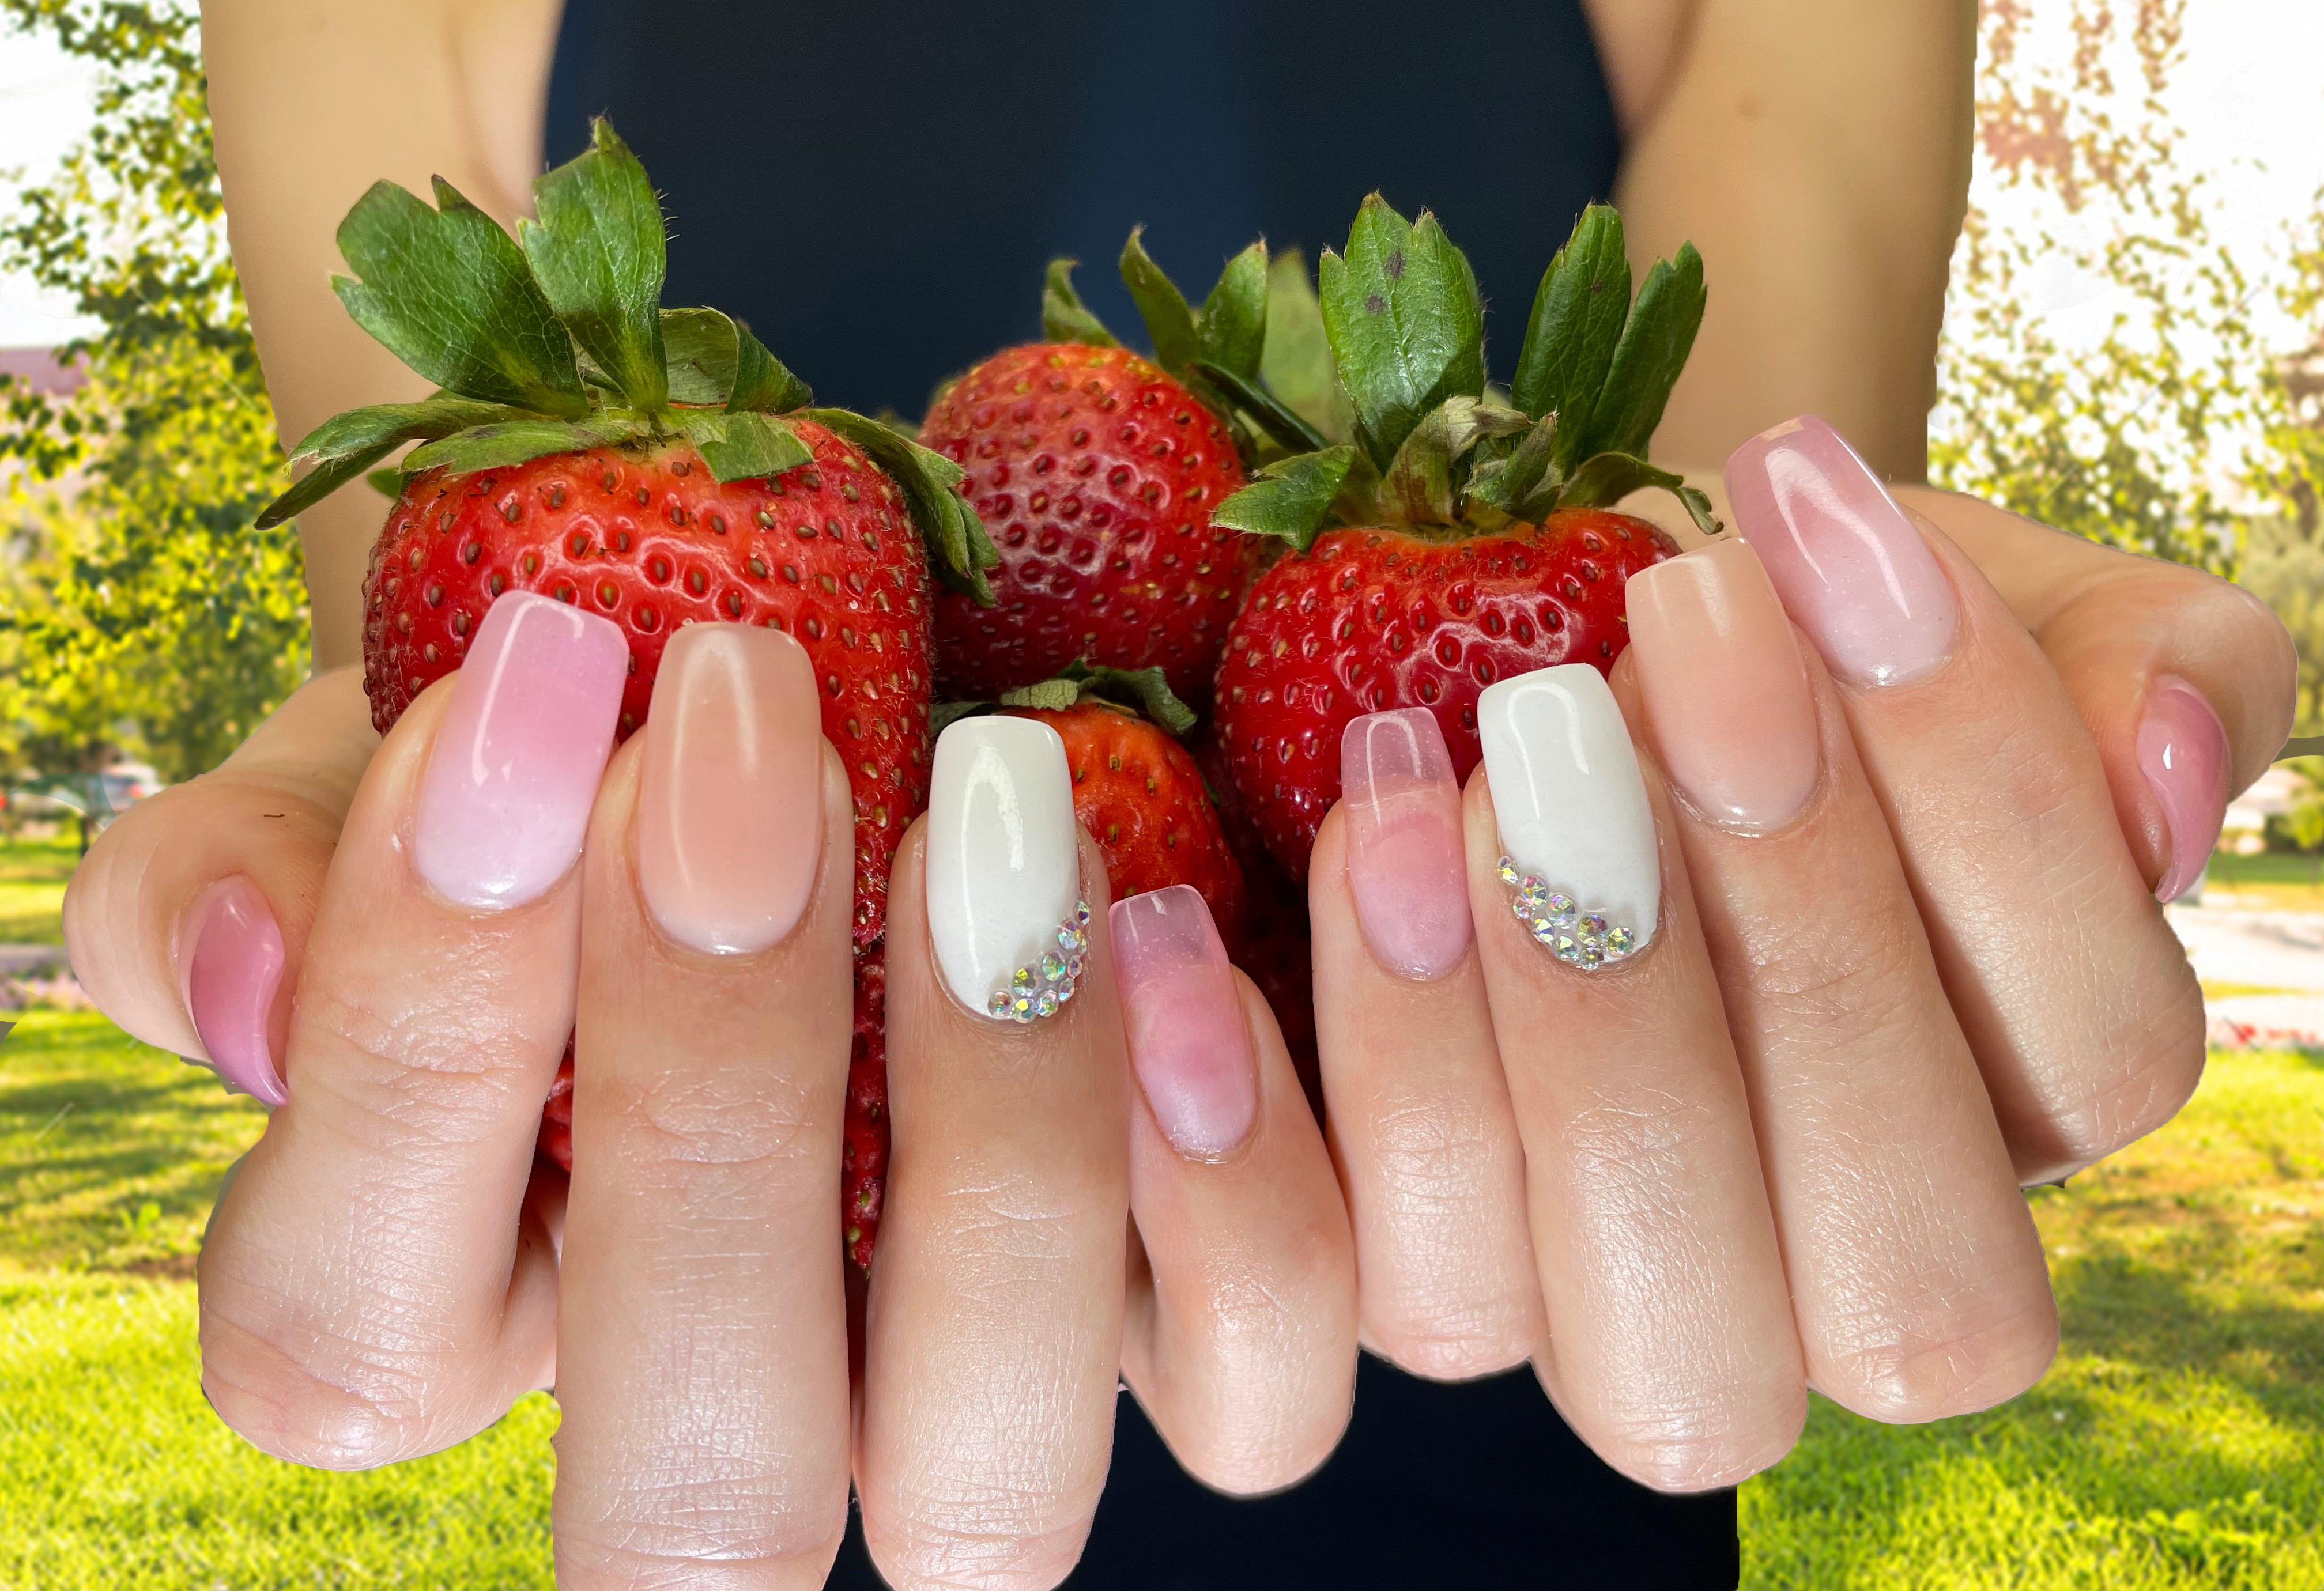 pink and white acrylic nails holding strawberries